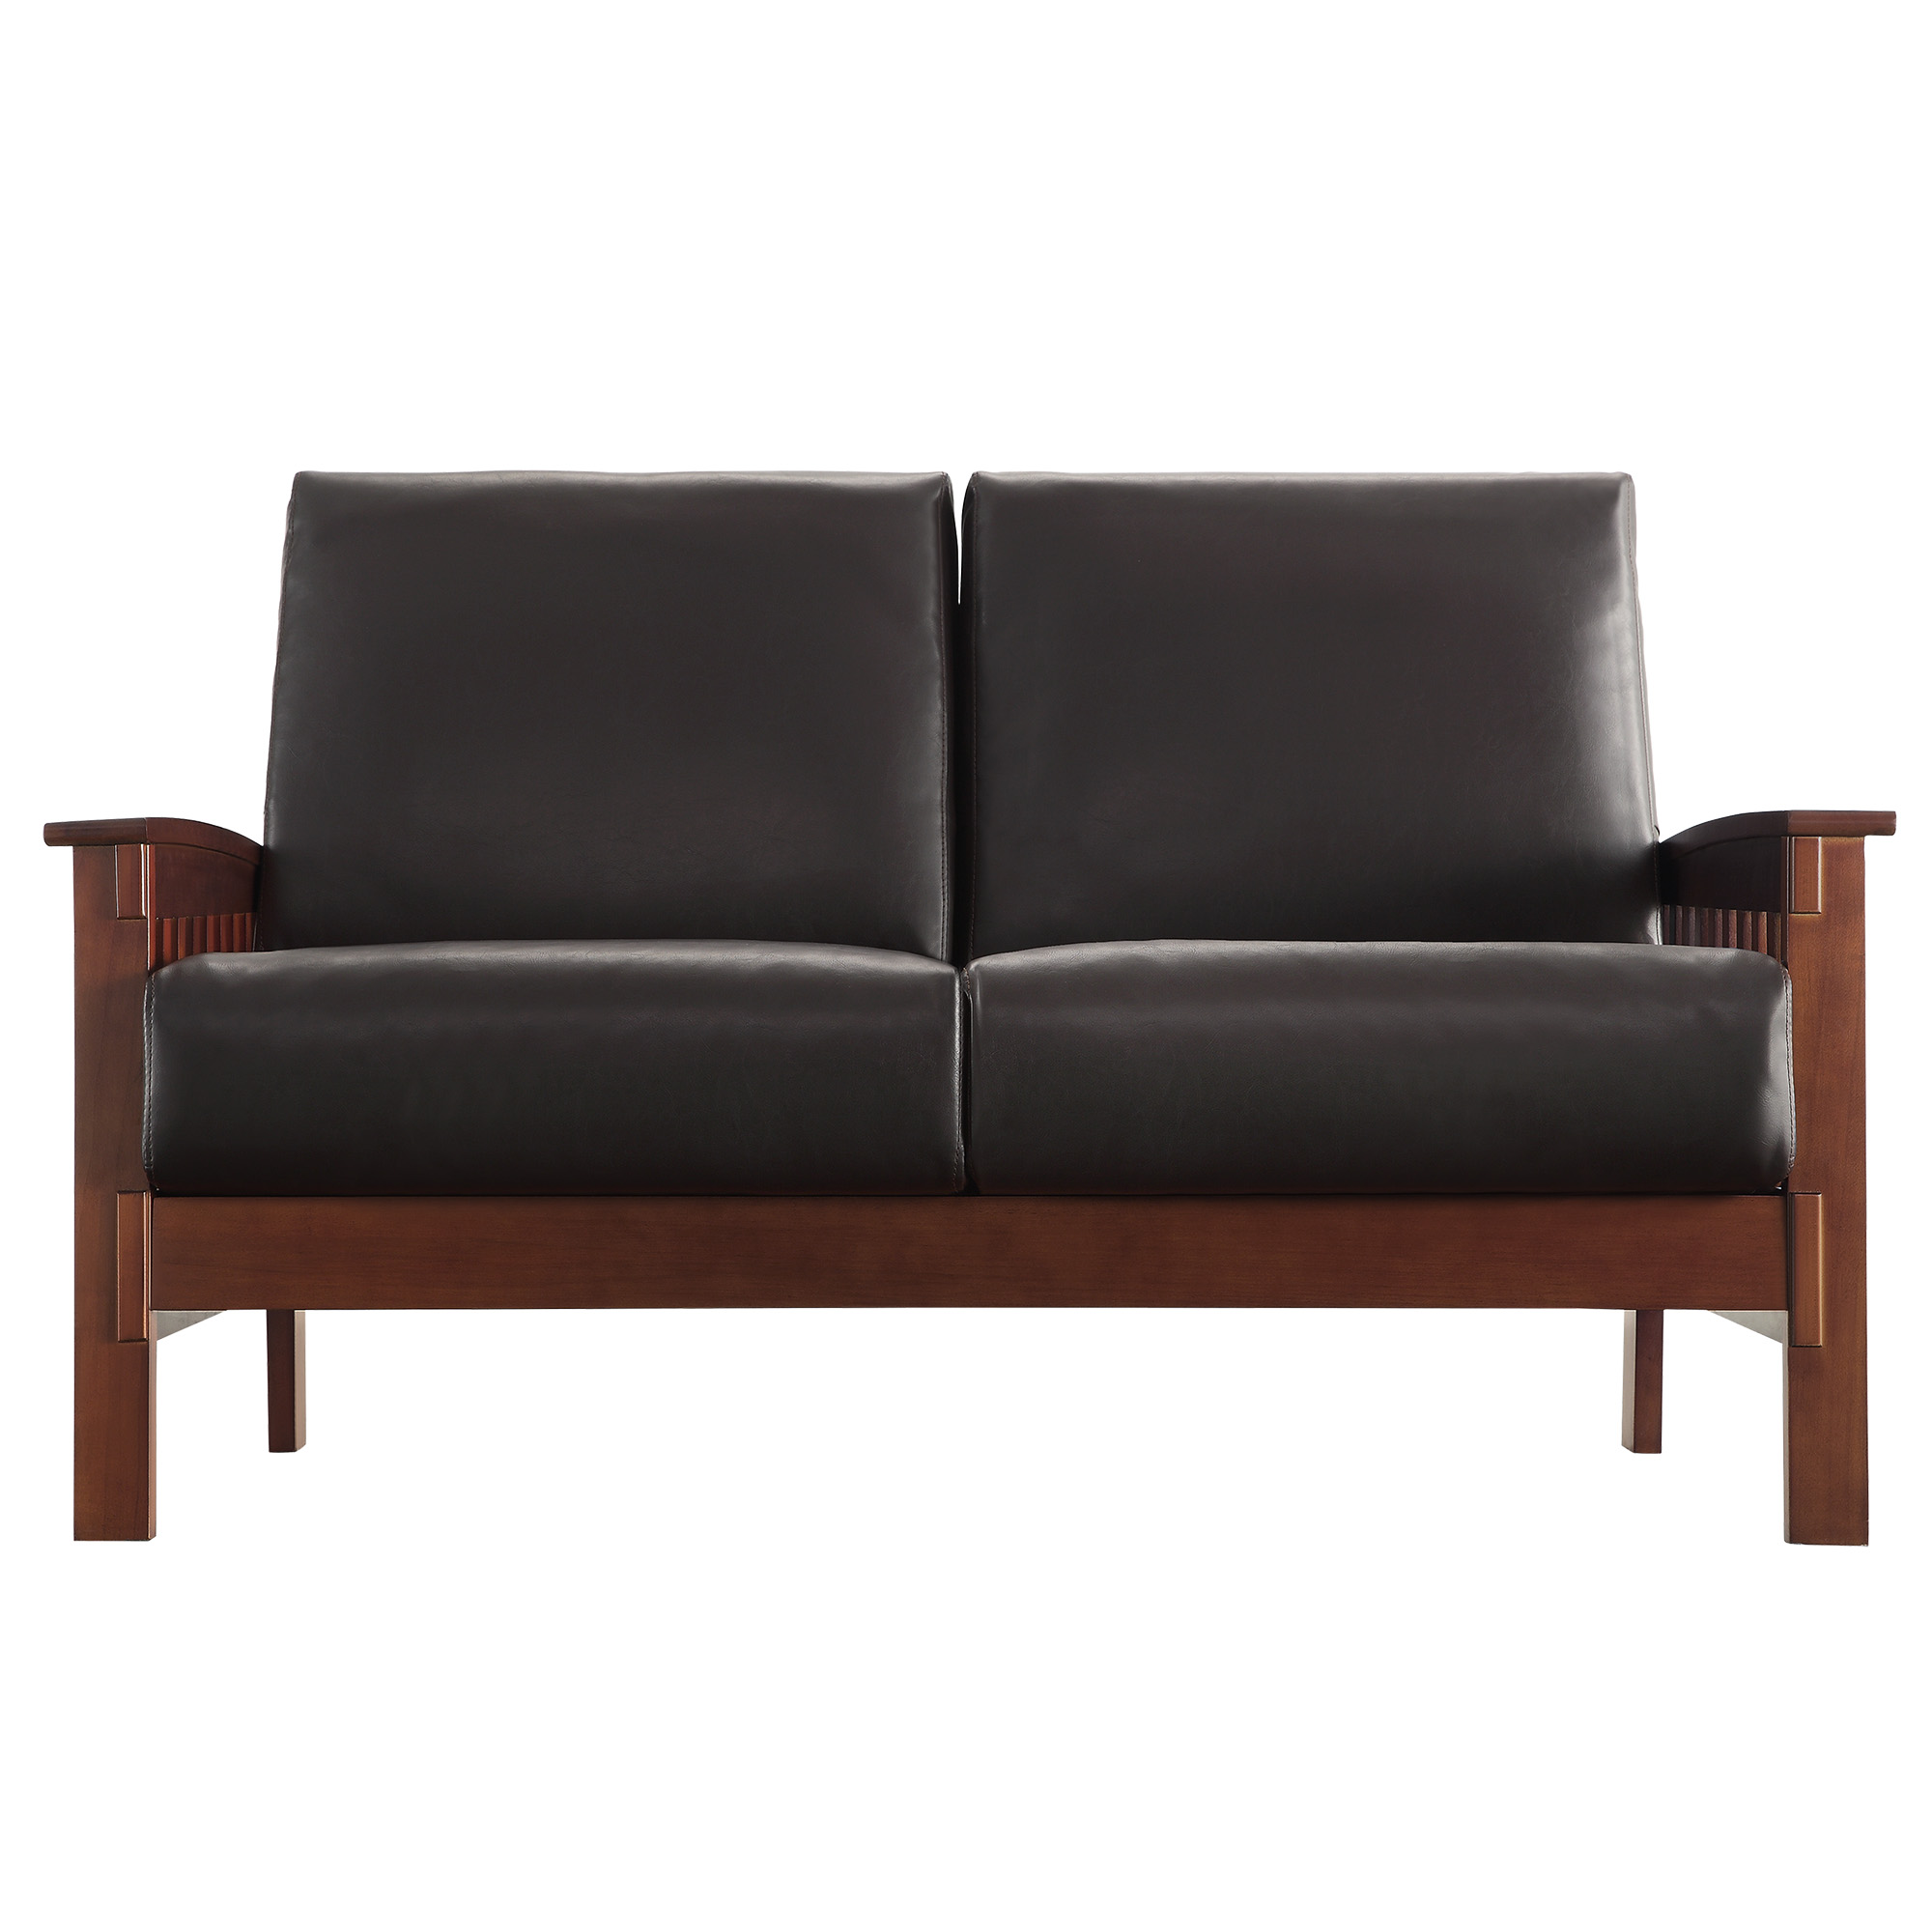 Details Loveseat Sofa Couch Dark Brown Faux Leather Seat Cushions